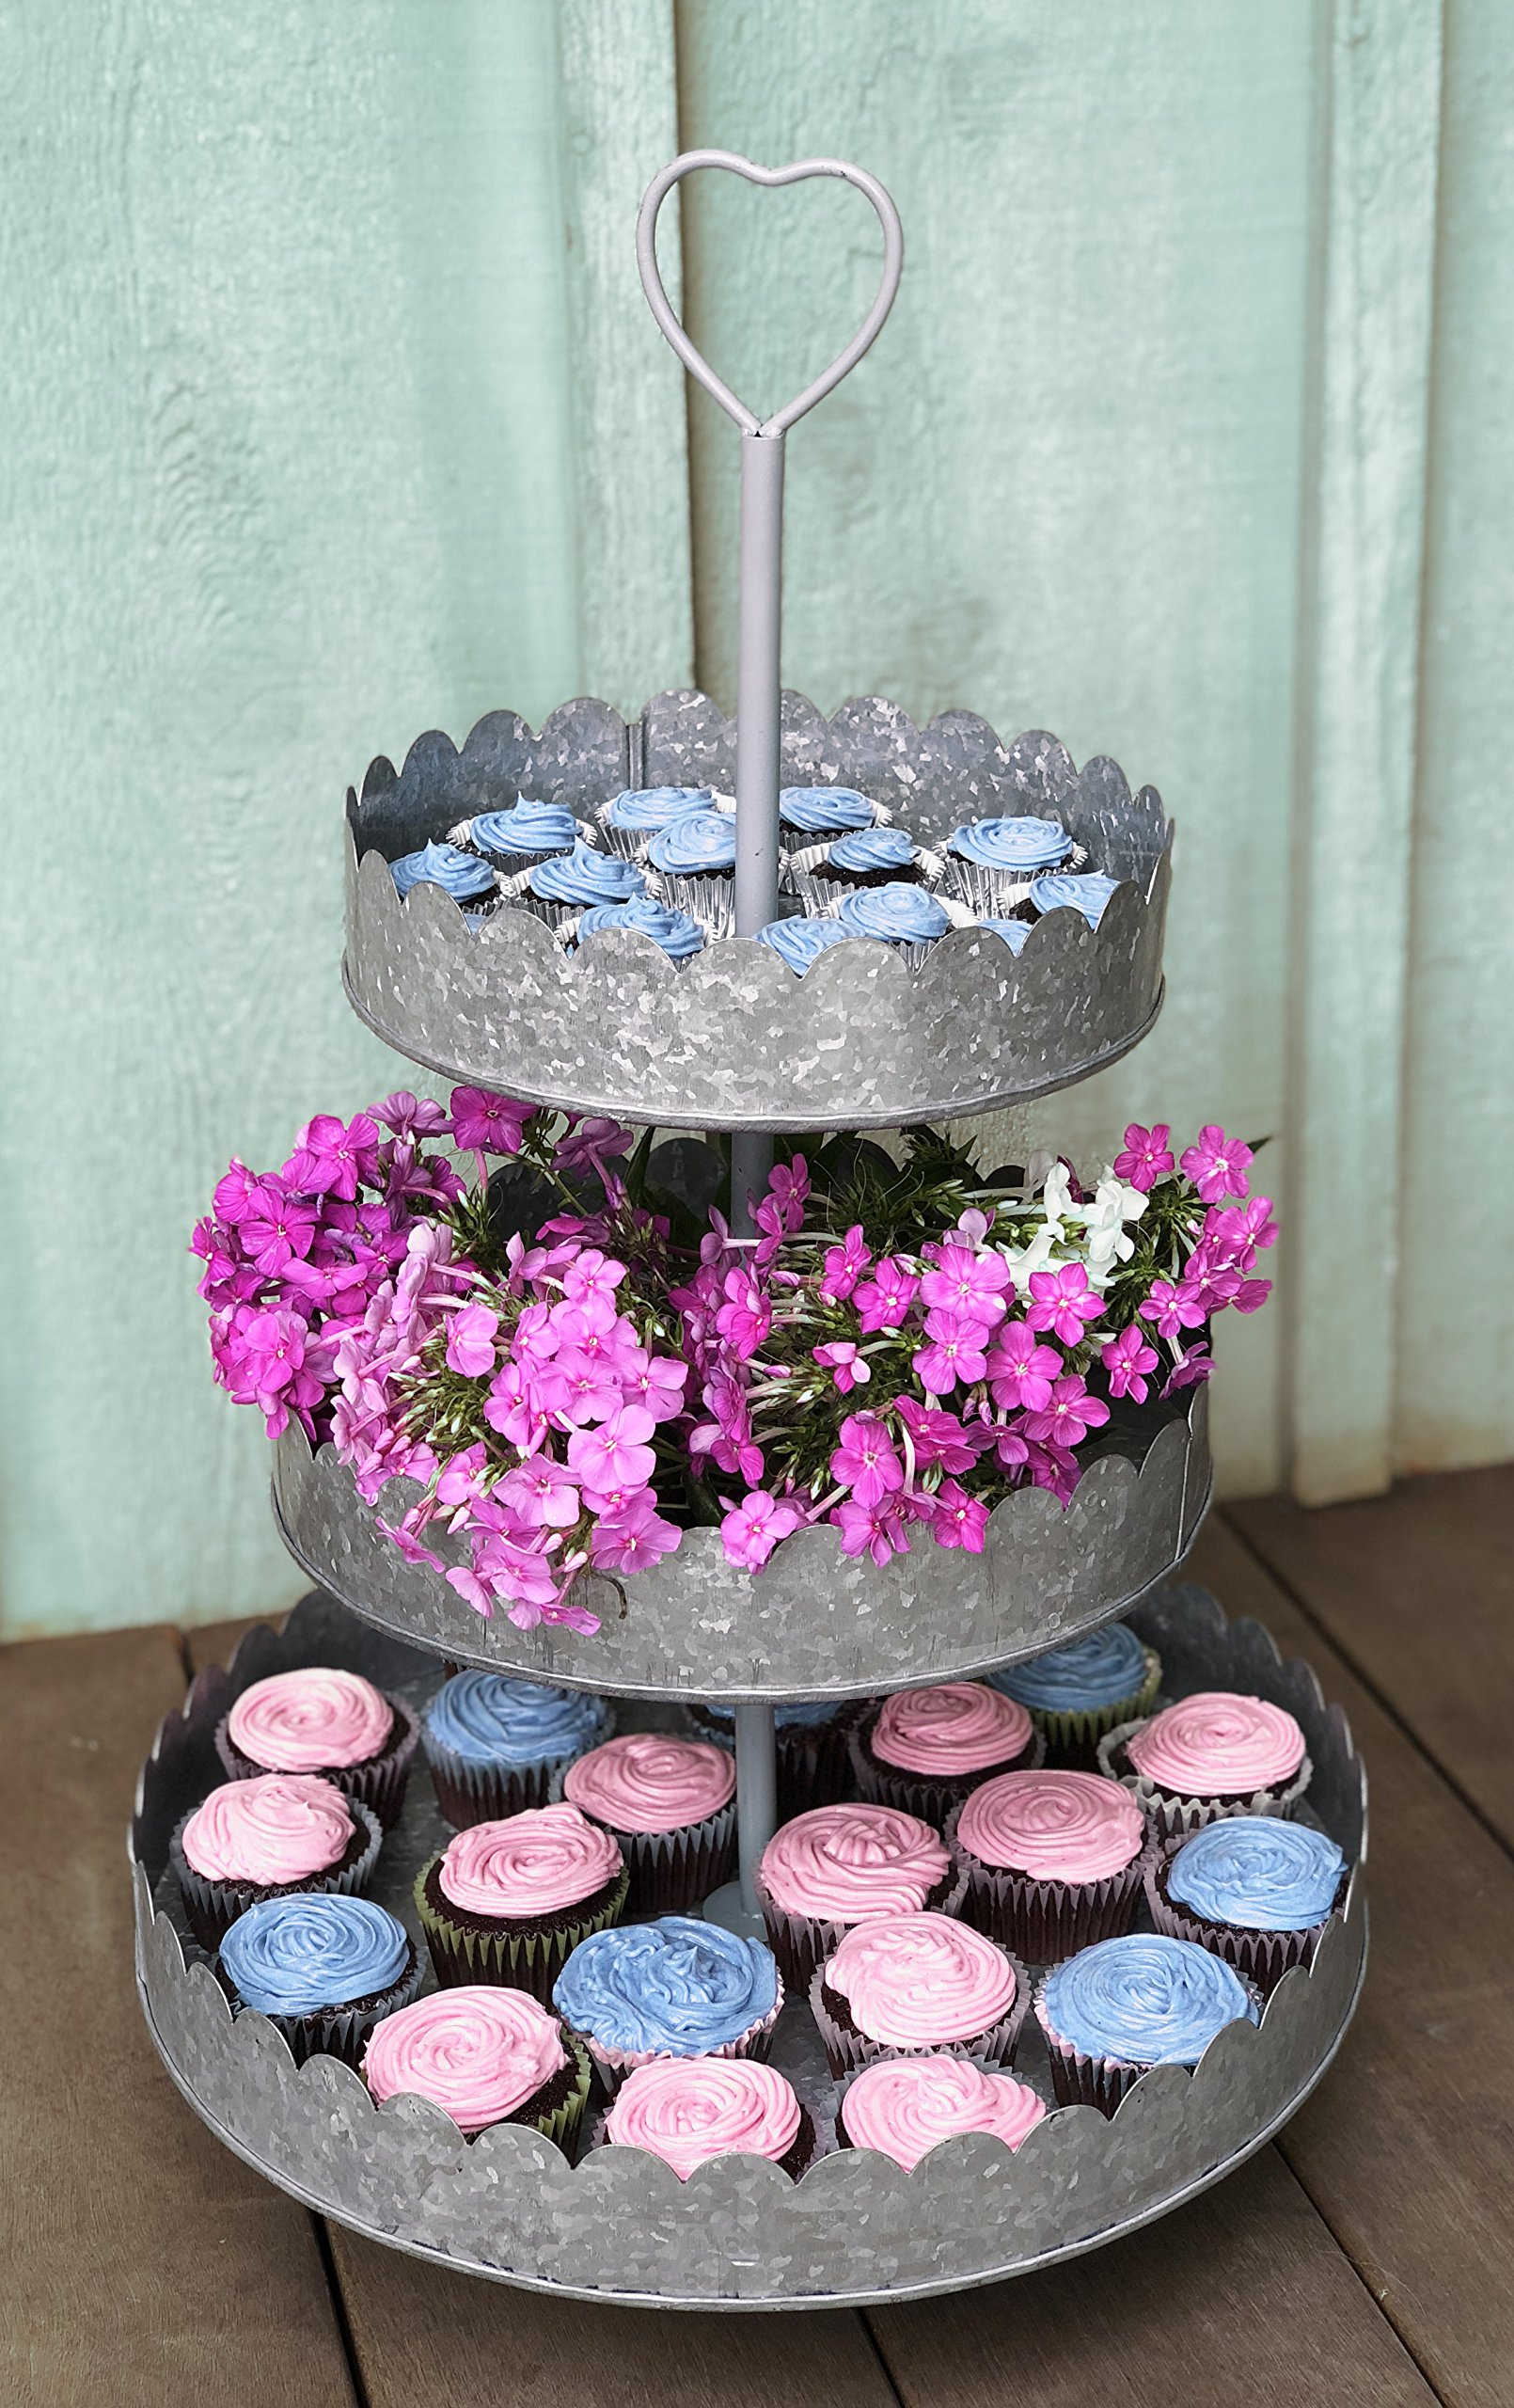 Rustic Galvanized 3-Tier Round Display Stand | Tiered Heart Cupcake Stand | Dessert Tower | Pretty, Romantic Details Perfect for Weddings |Statement Piece at 15'' Diameter and 23'' High by Autumn Alley (Image #2)